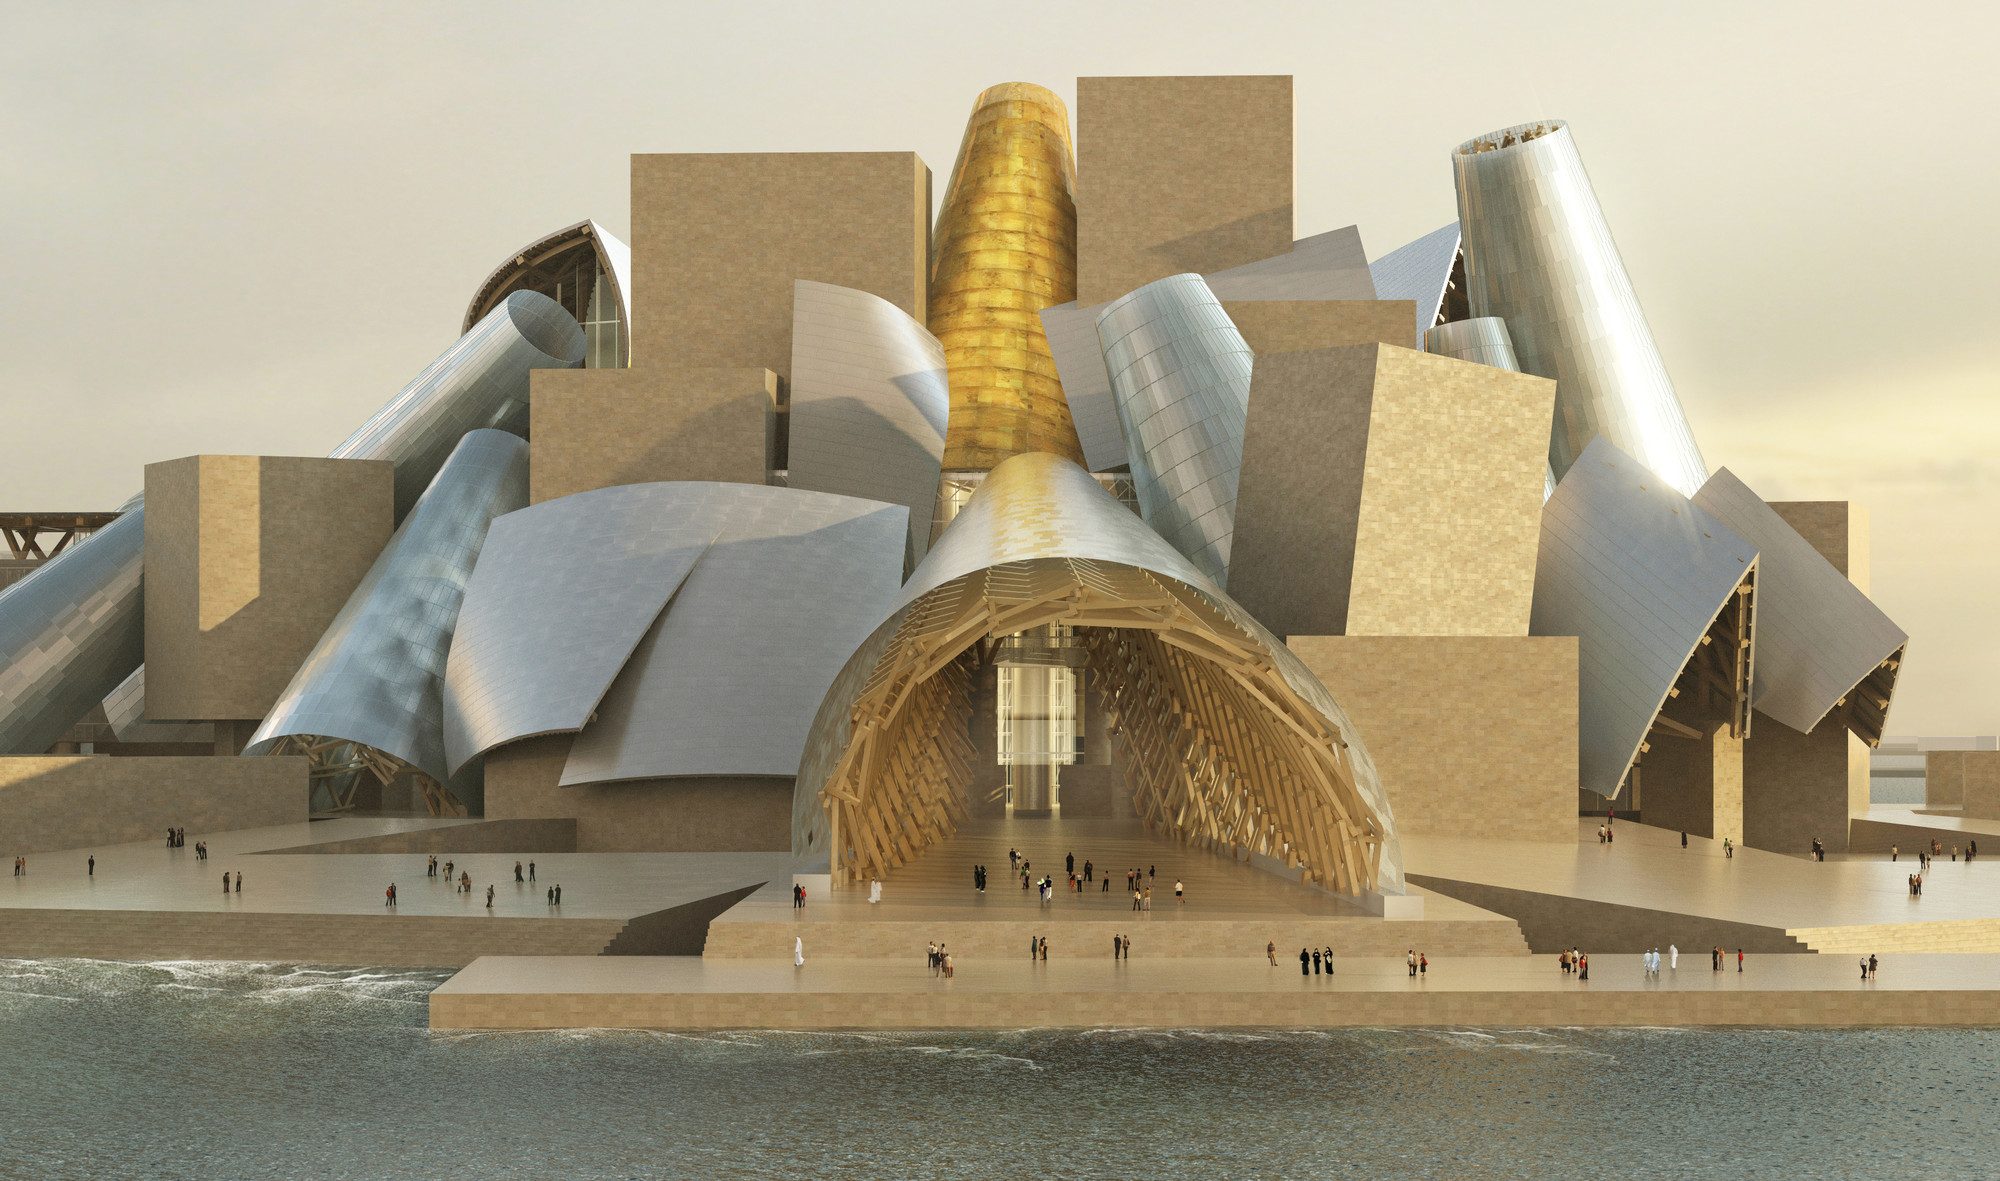 Frank Gehry Tells the Story Behind Guggenheim Abu Dhabi , Guggenheim Abu Dhabi. Image © Gehry Partners